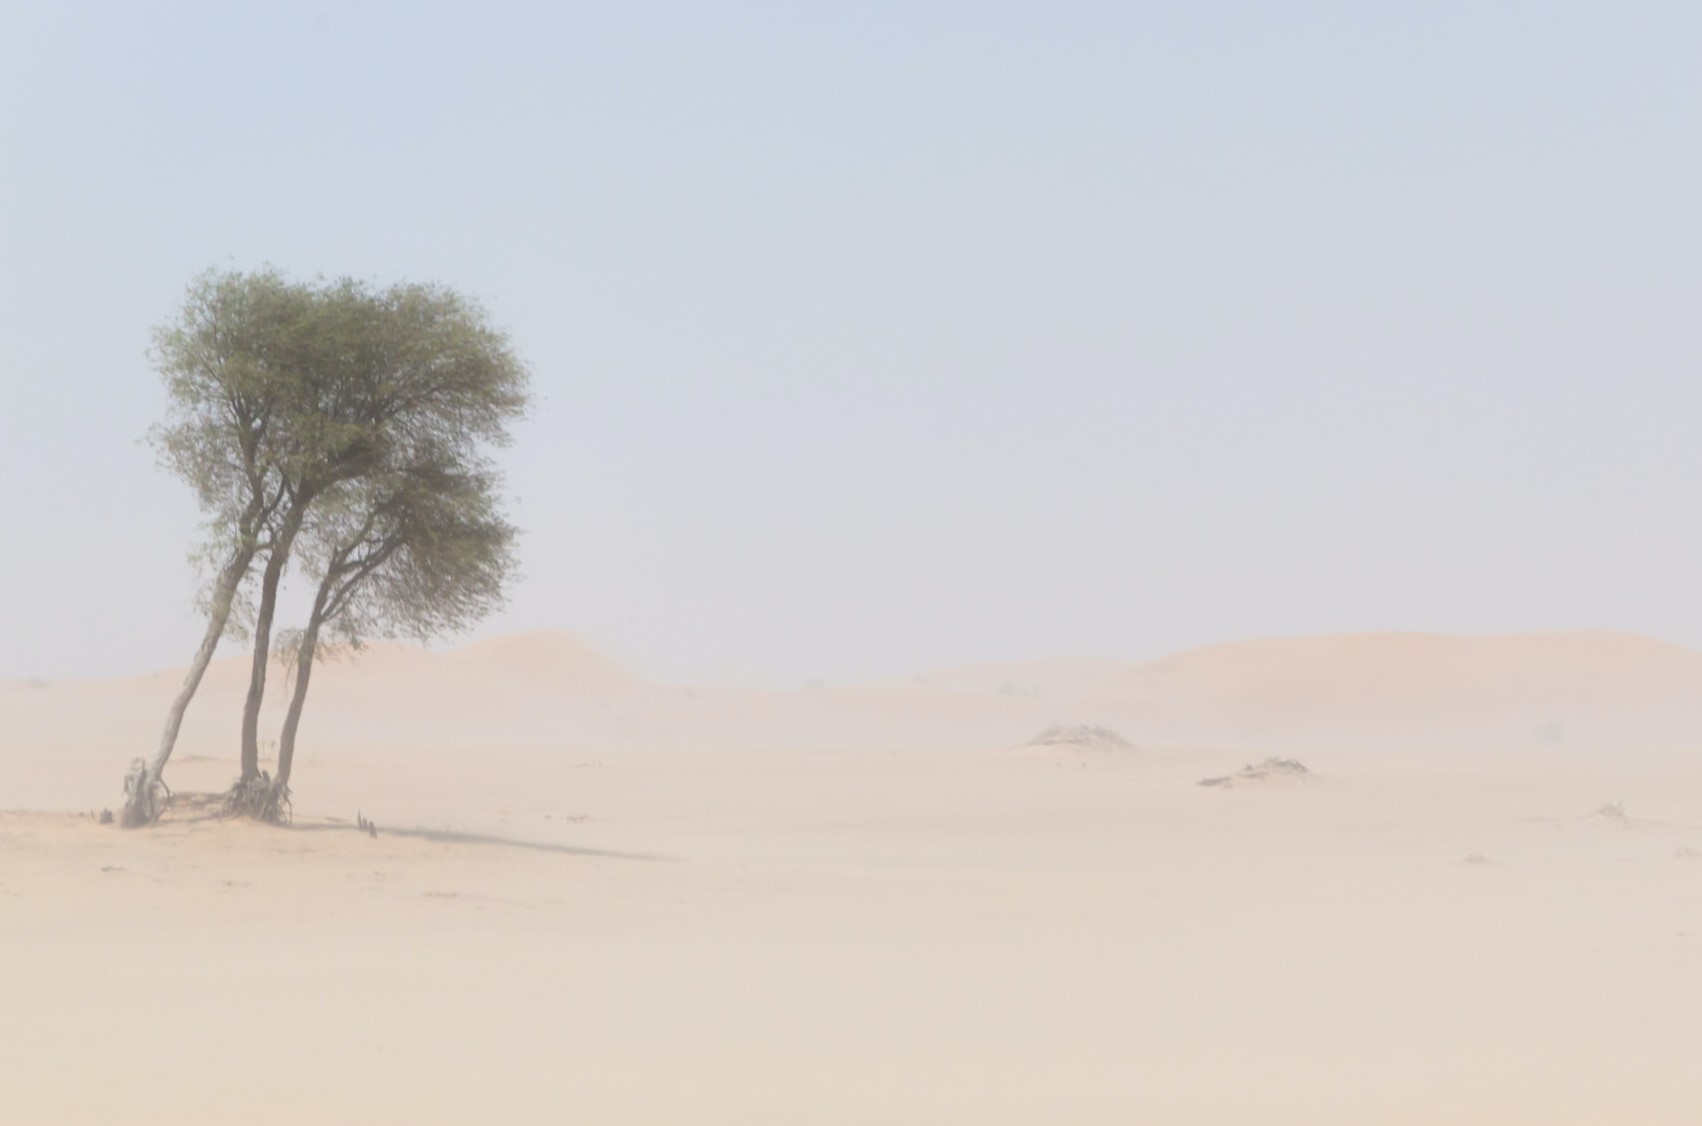 desert tree robert metz unsplash